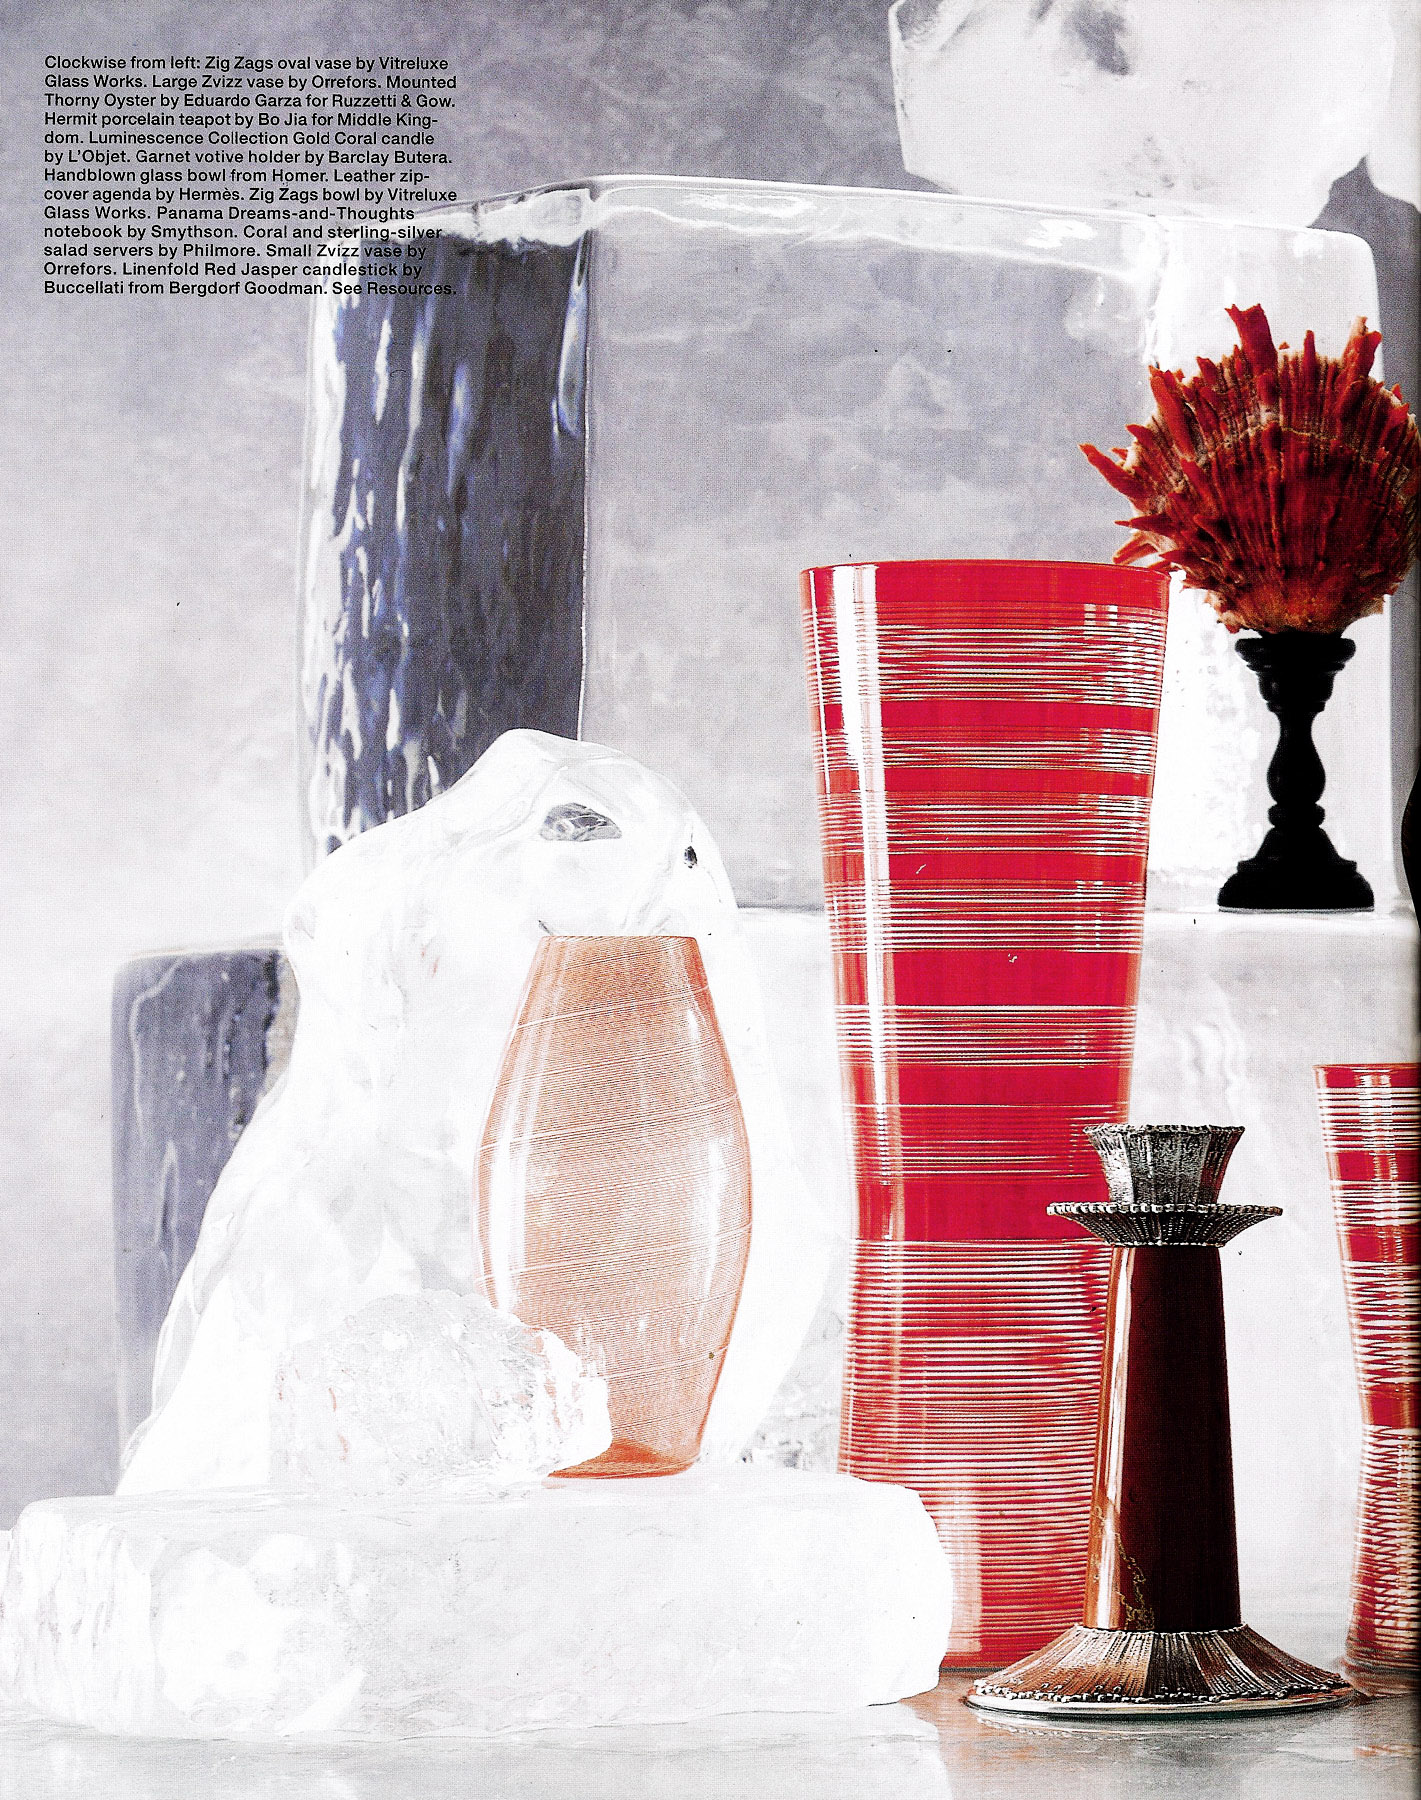 Elle Decor Frozen Assets Dec 05 3.jpg